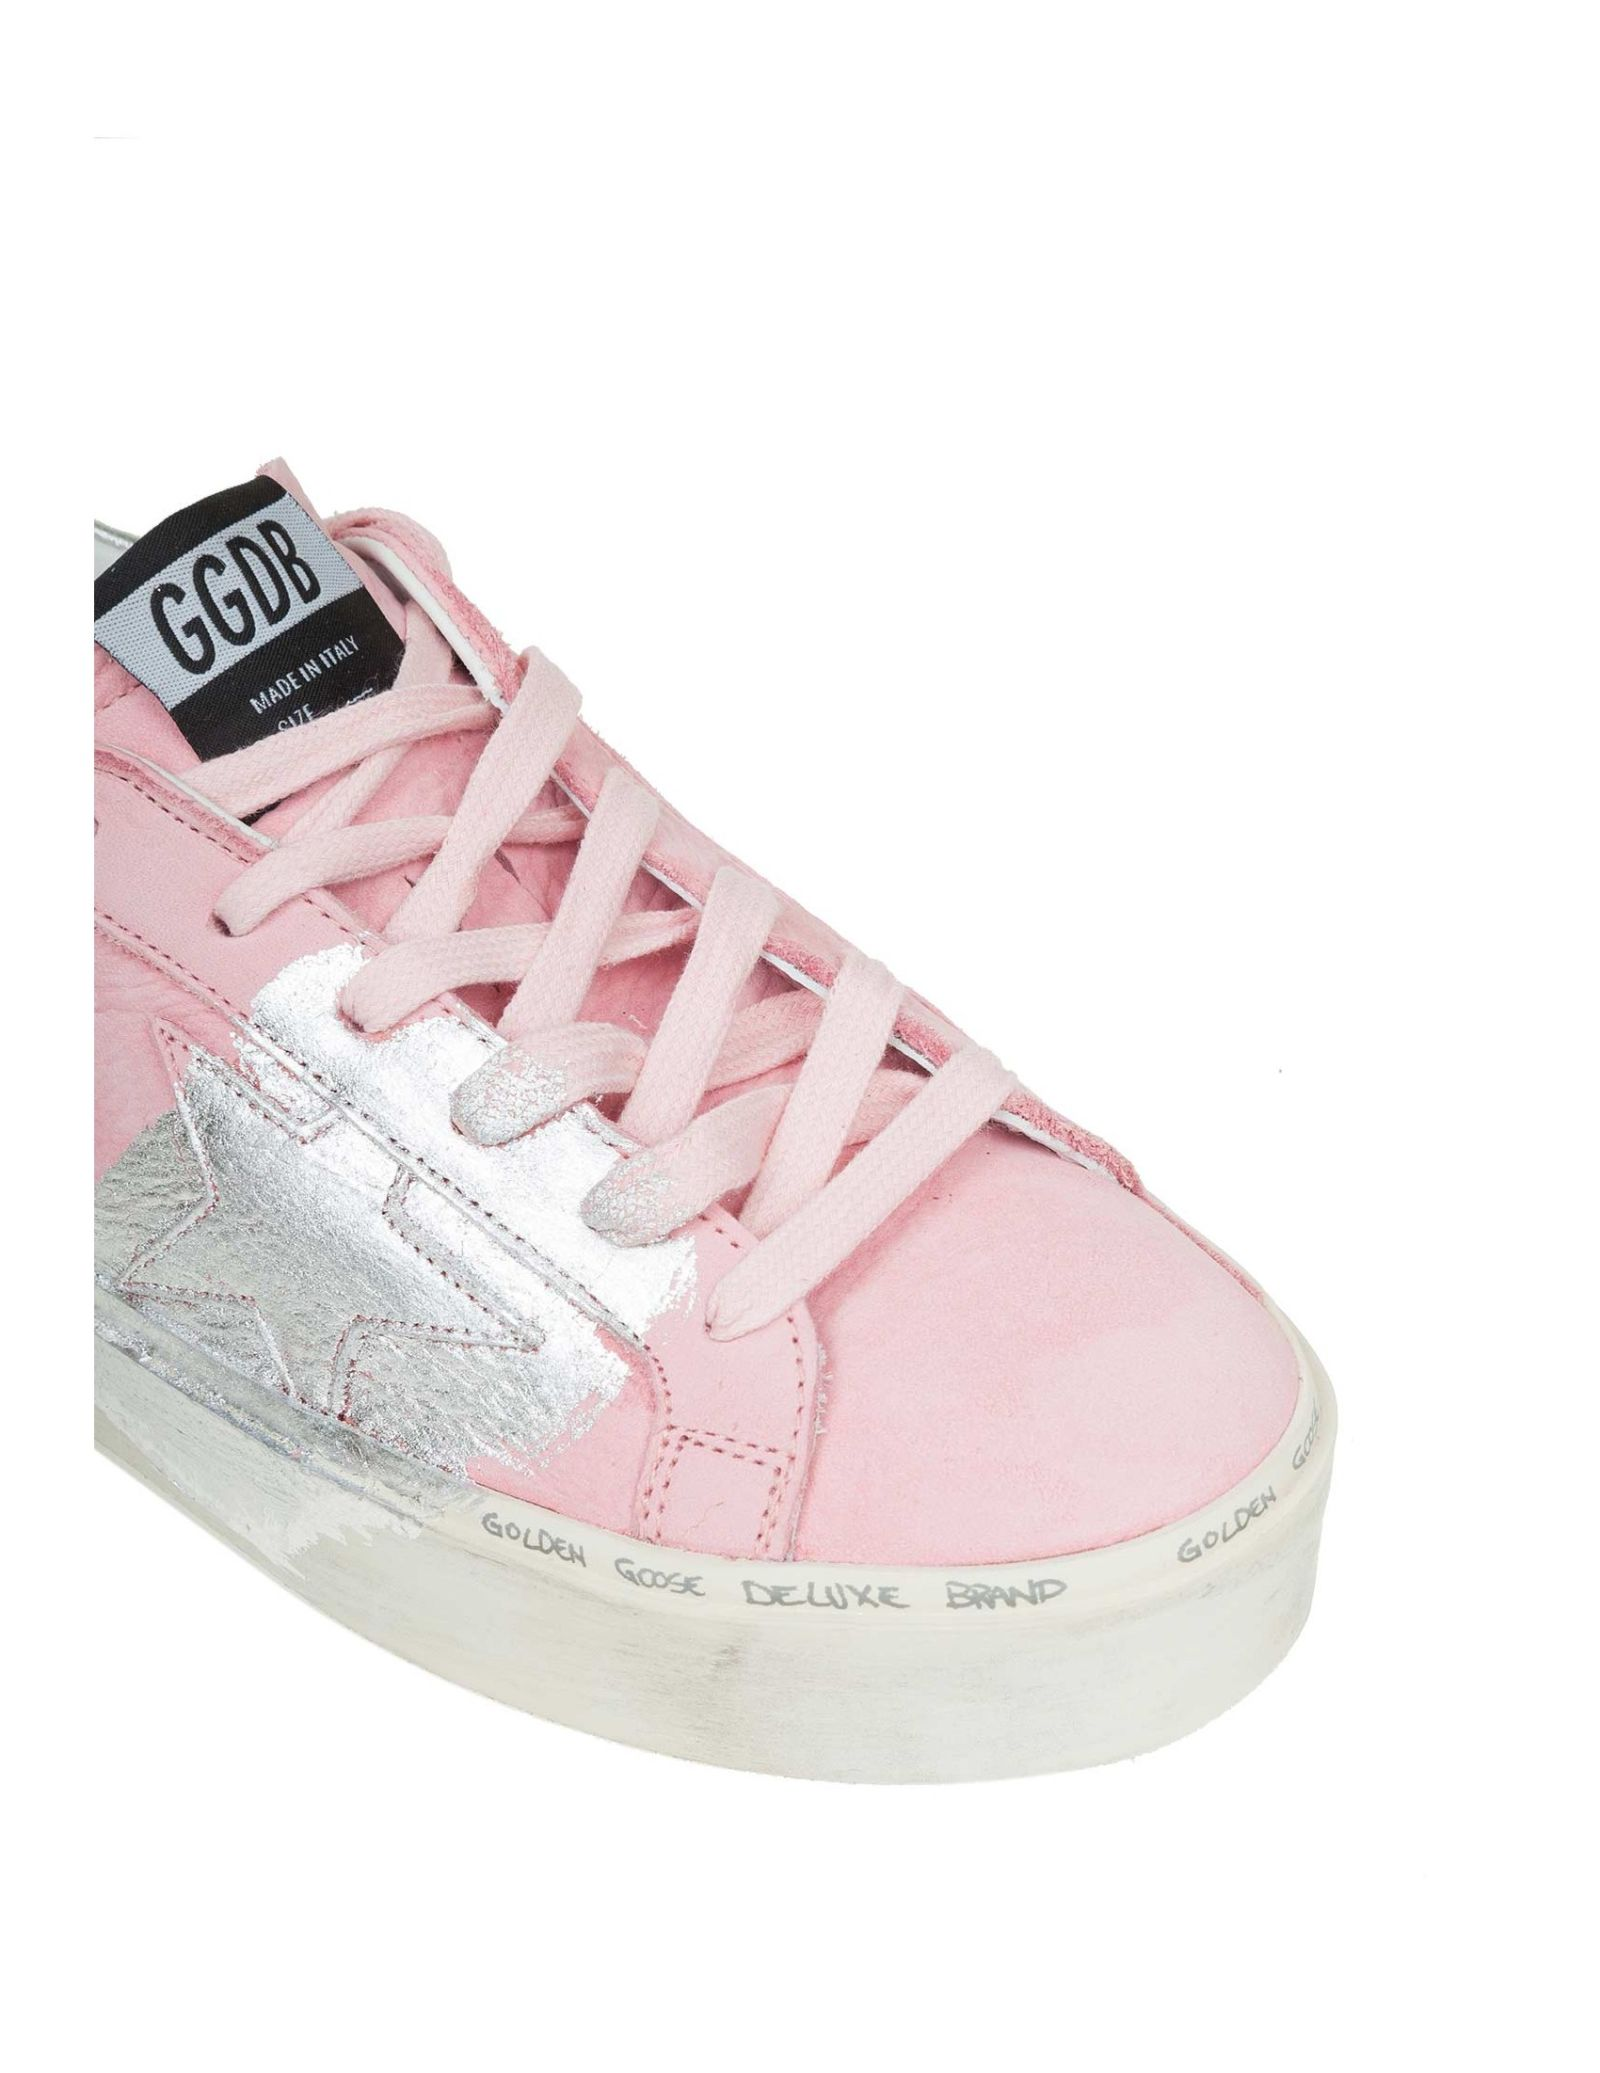 606daa8450cd ... Golden Goose Hi Star Sneakers In Nappa With Star In Silver Contrast -  Basic